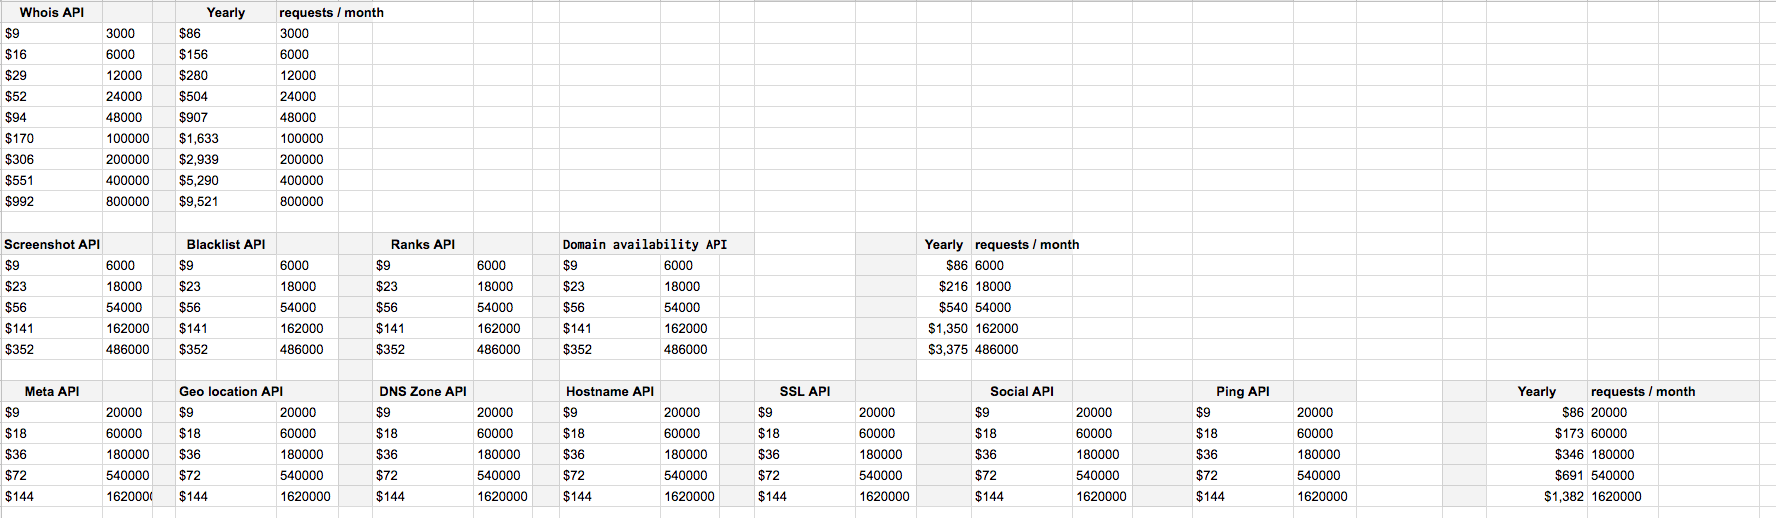 Unofficial WhoAPI pricing 2017